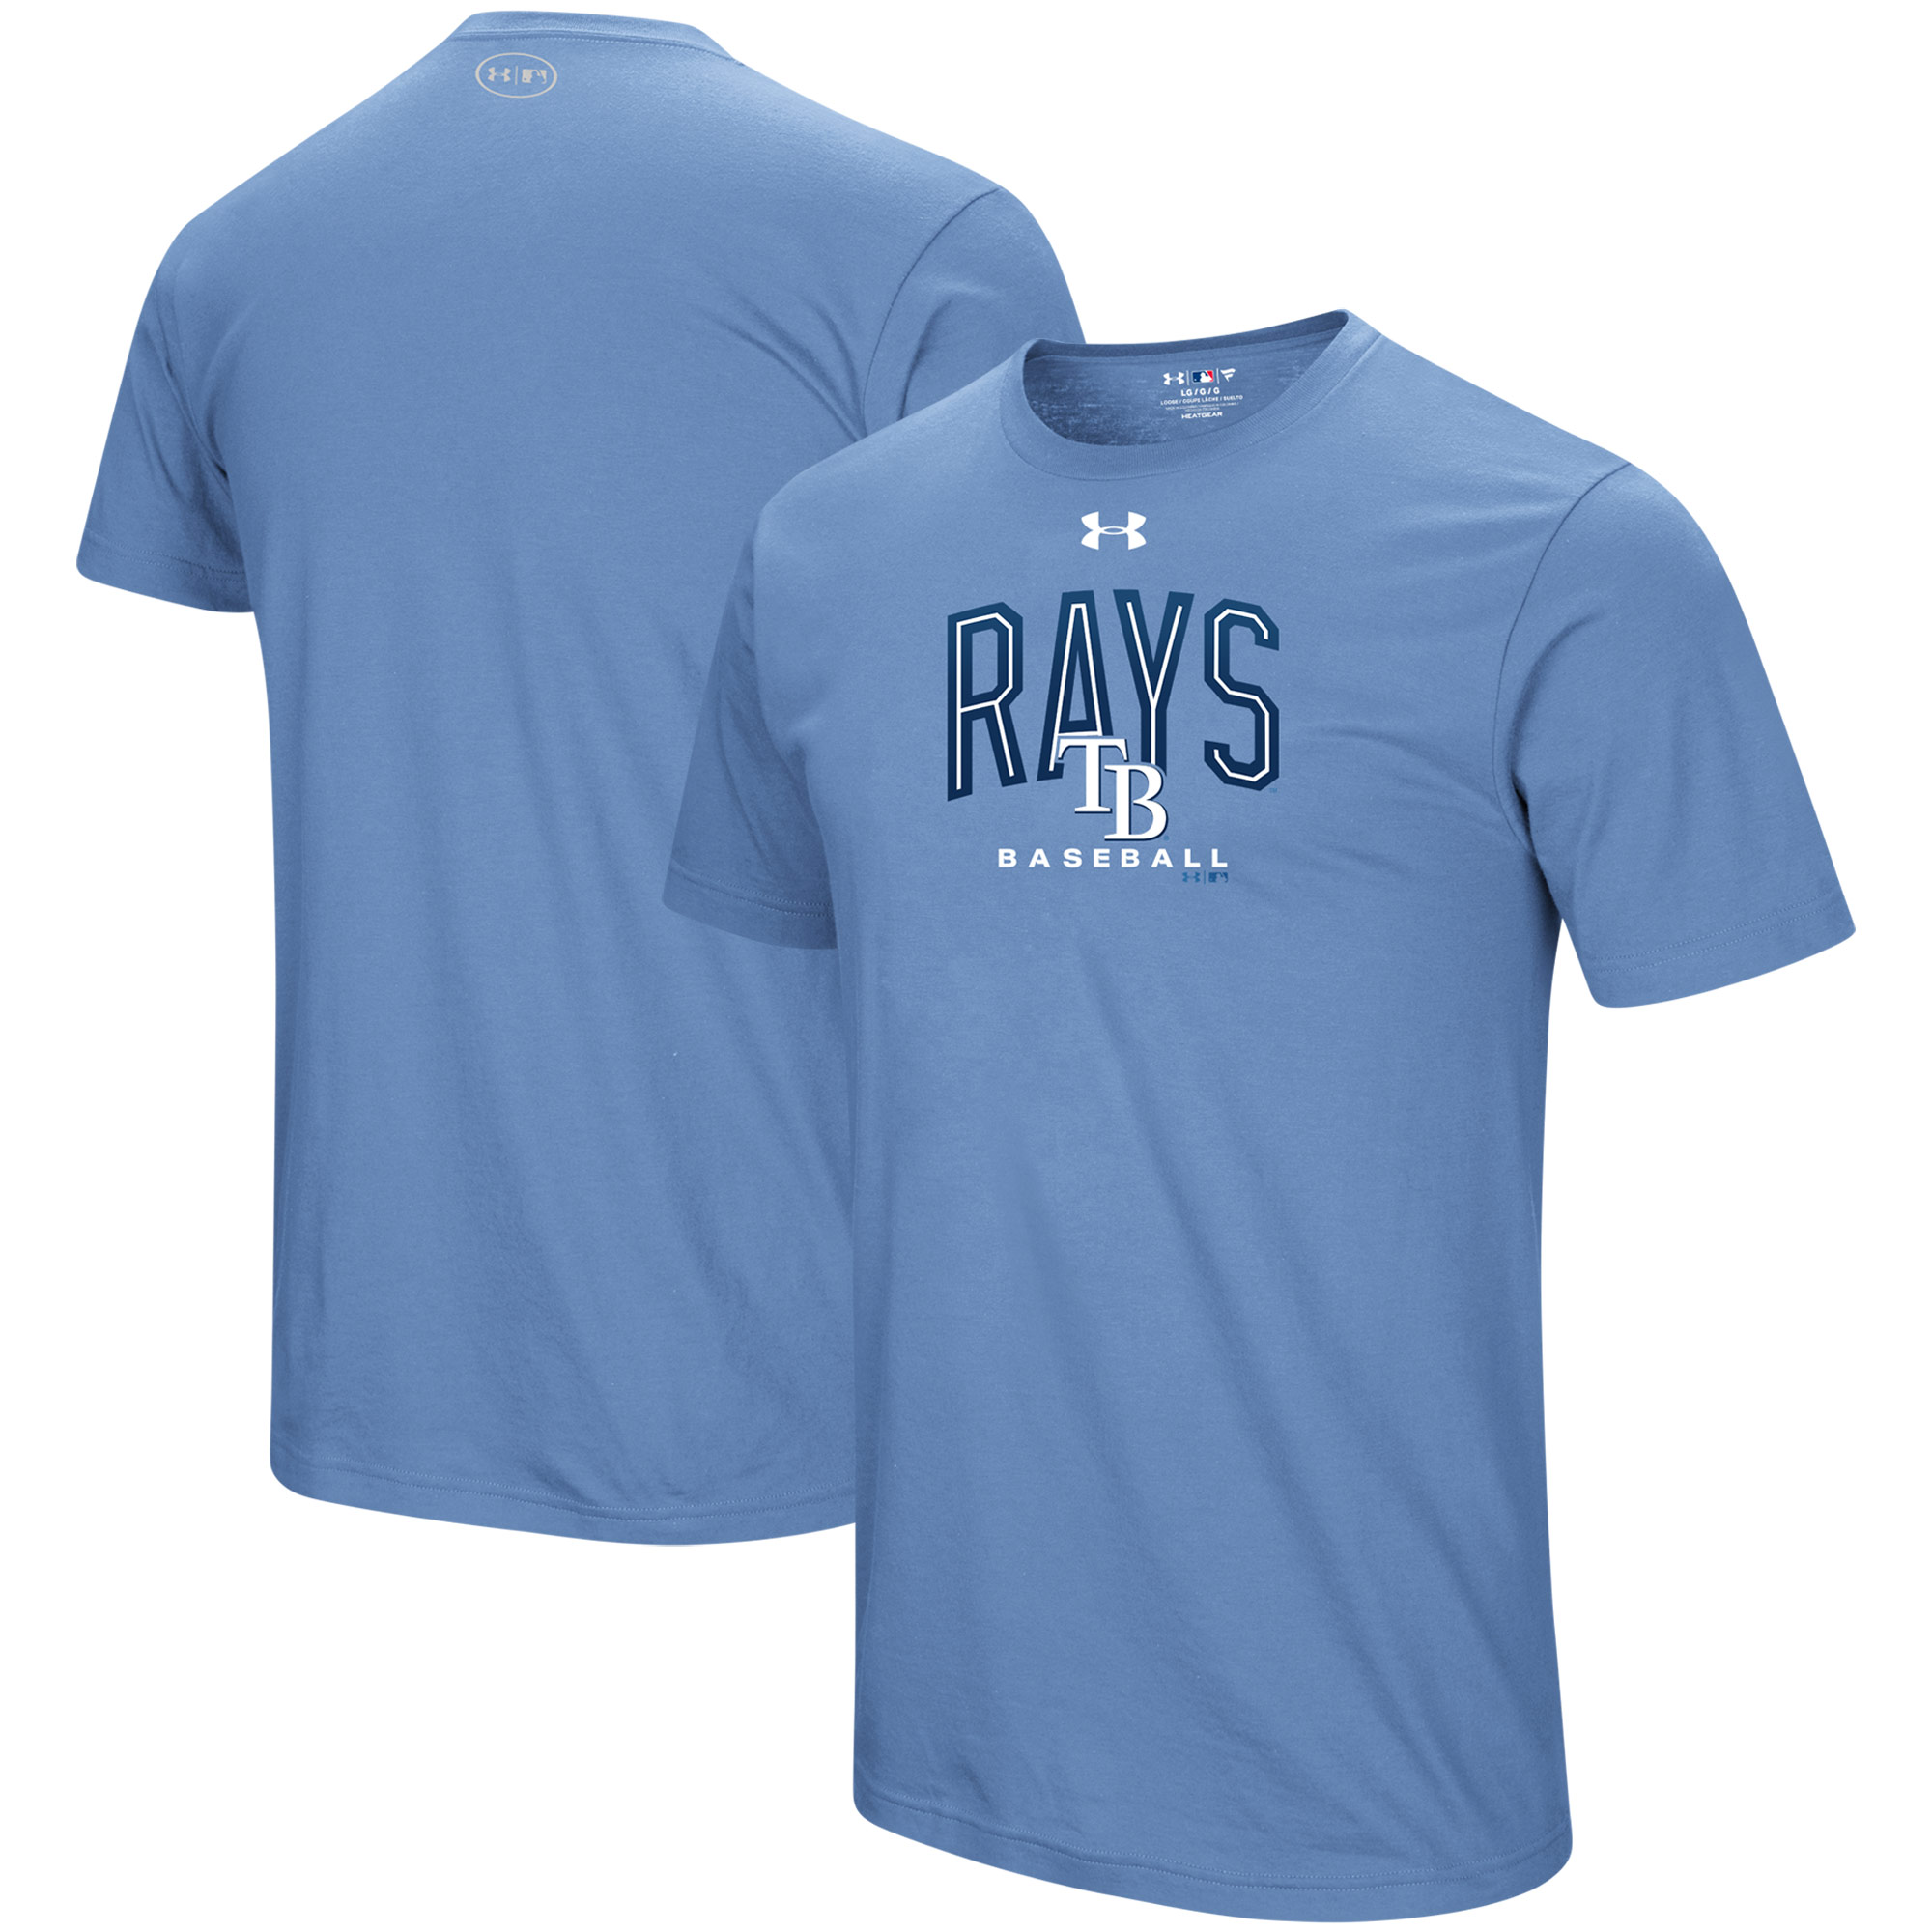 Tampa Bay Rays Under Armour Performance Arch T-Shirt - Light Blue